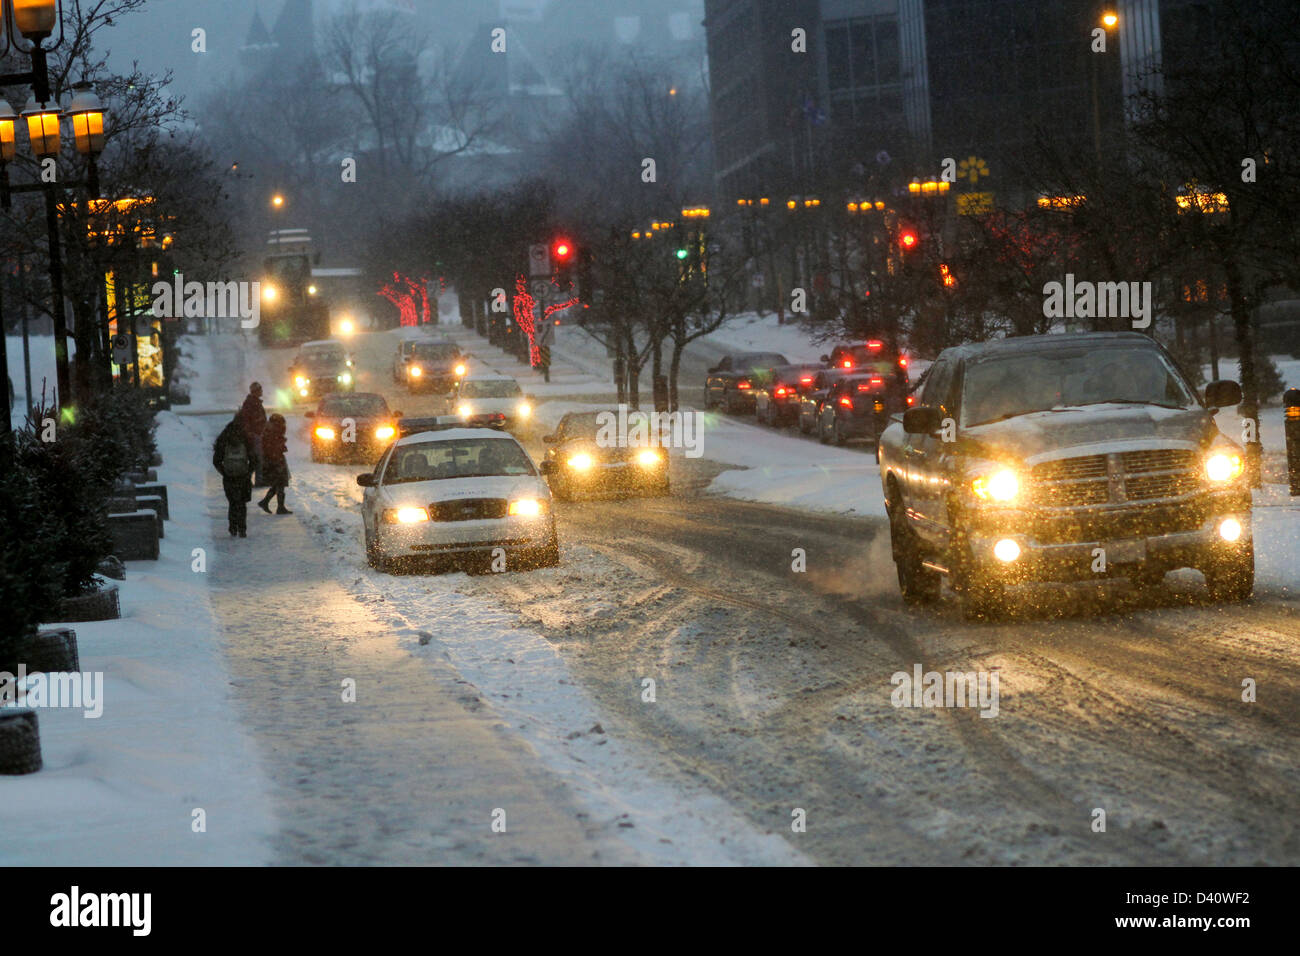 Downtown Montreal, Quebec during a heavy snowfall. - Stock Image